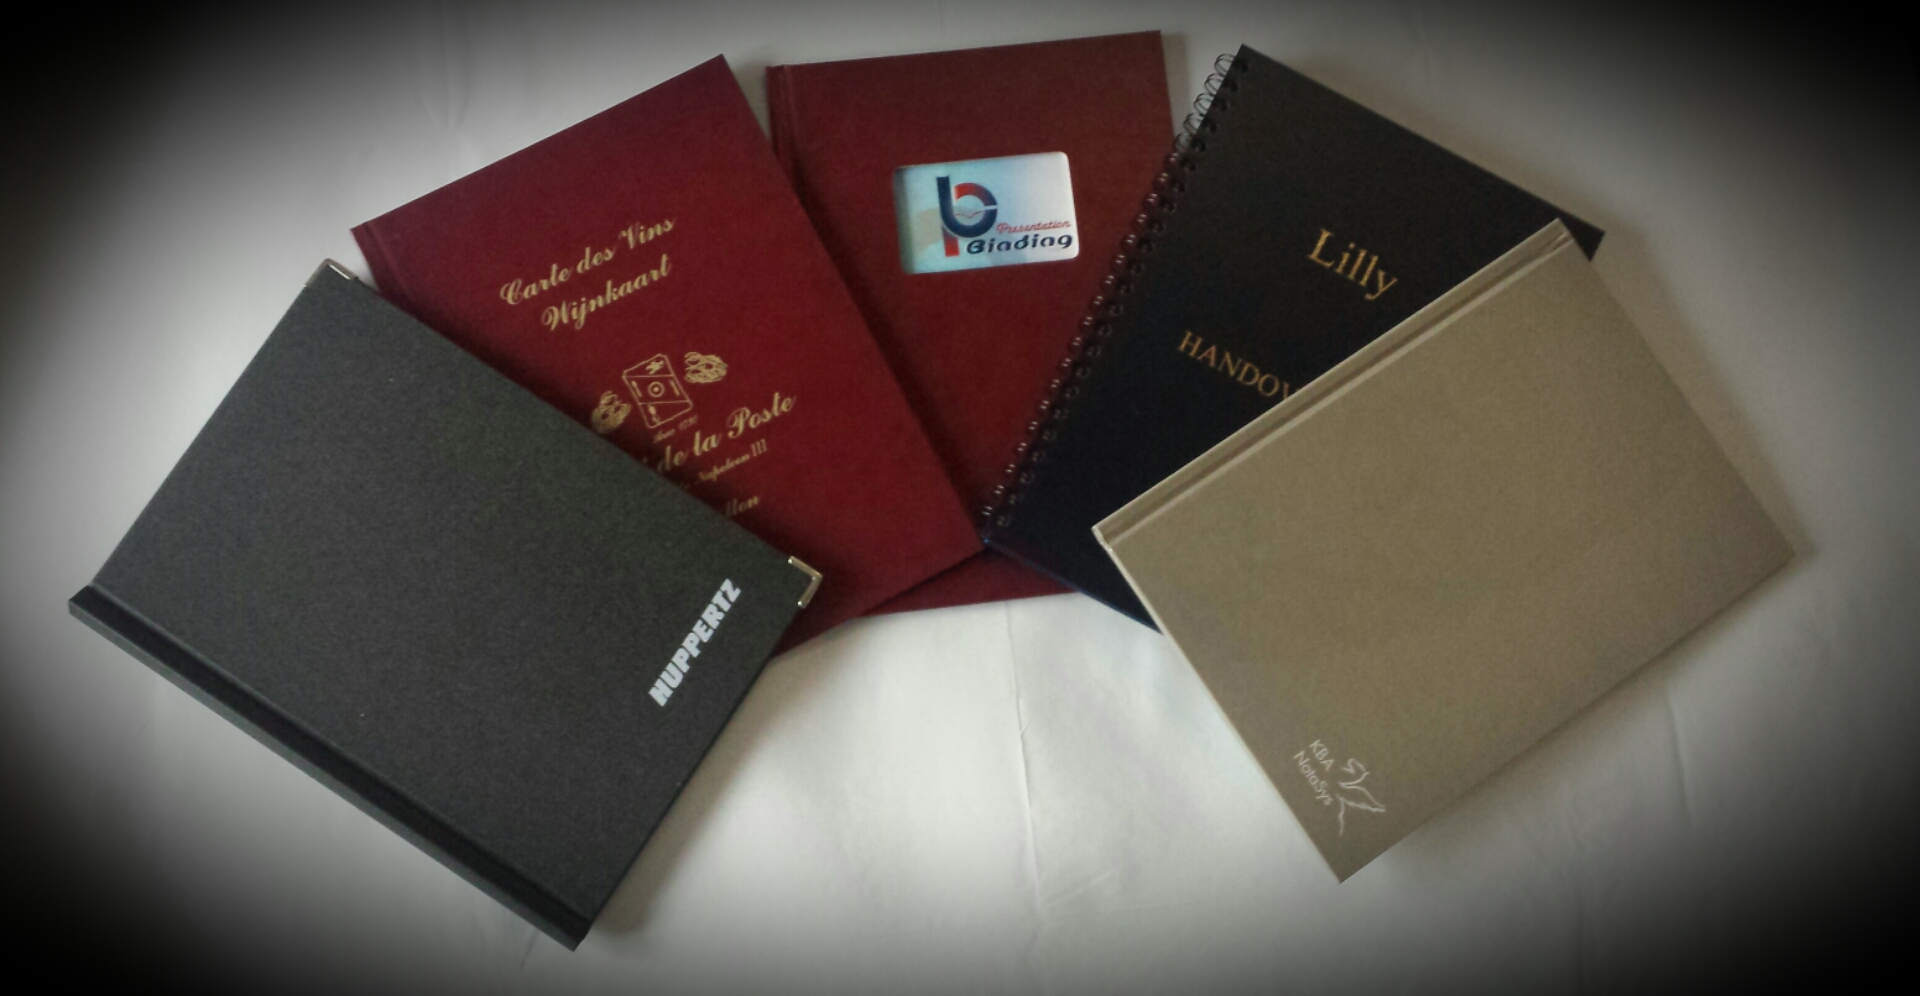 Foil Printed Hard Covers